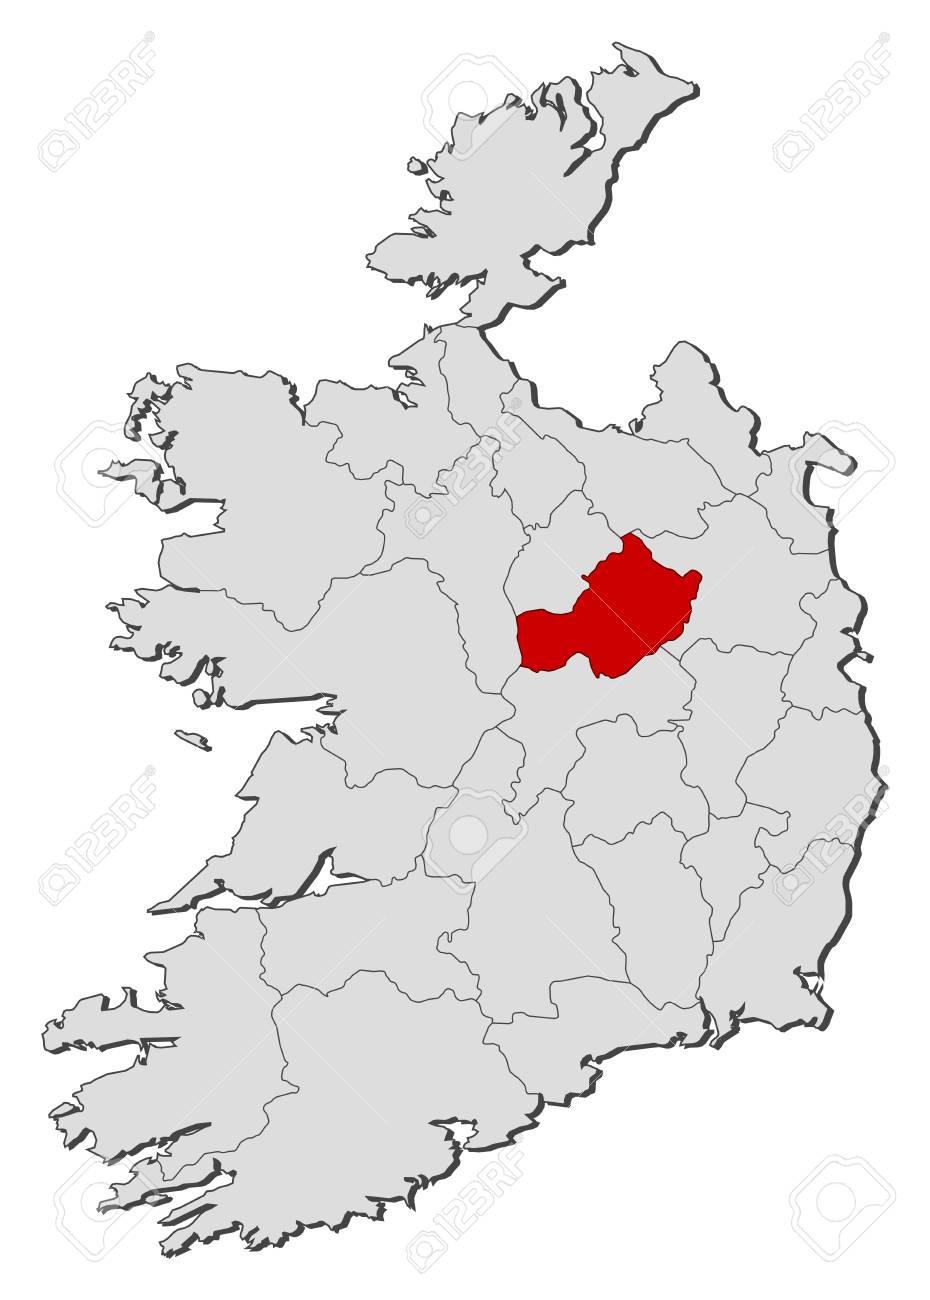 Westmeath Ireland Map.Map Of Ireland With The Provinces Westmeath Is Highlighted Royalty